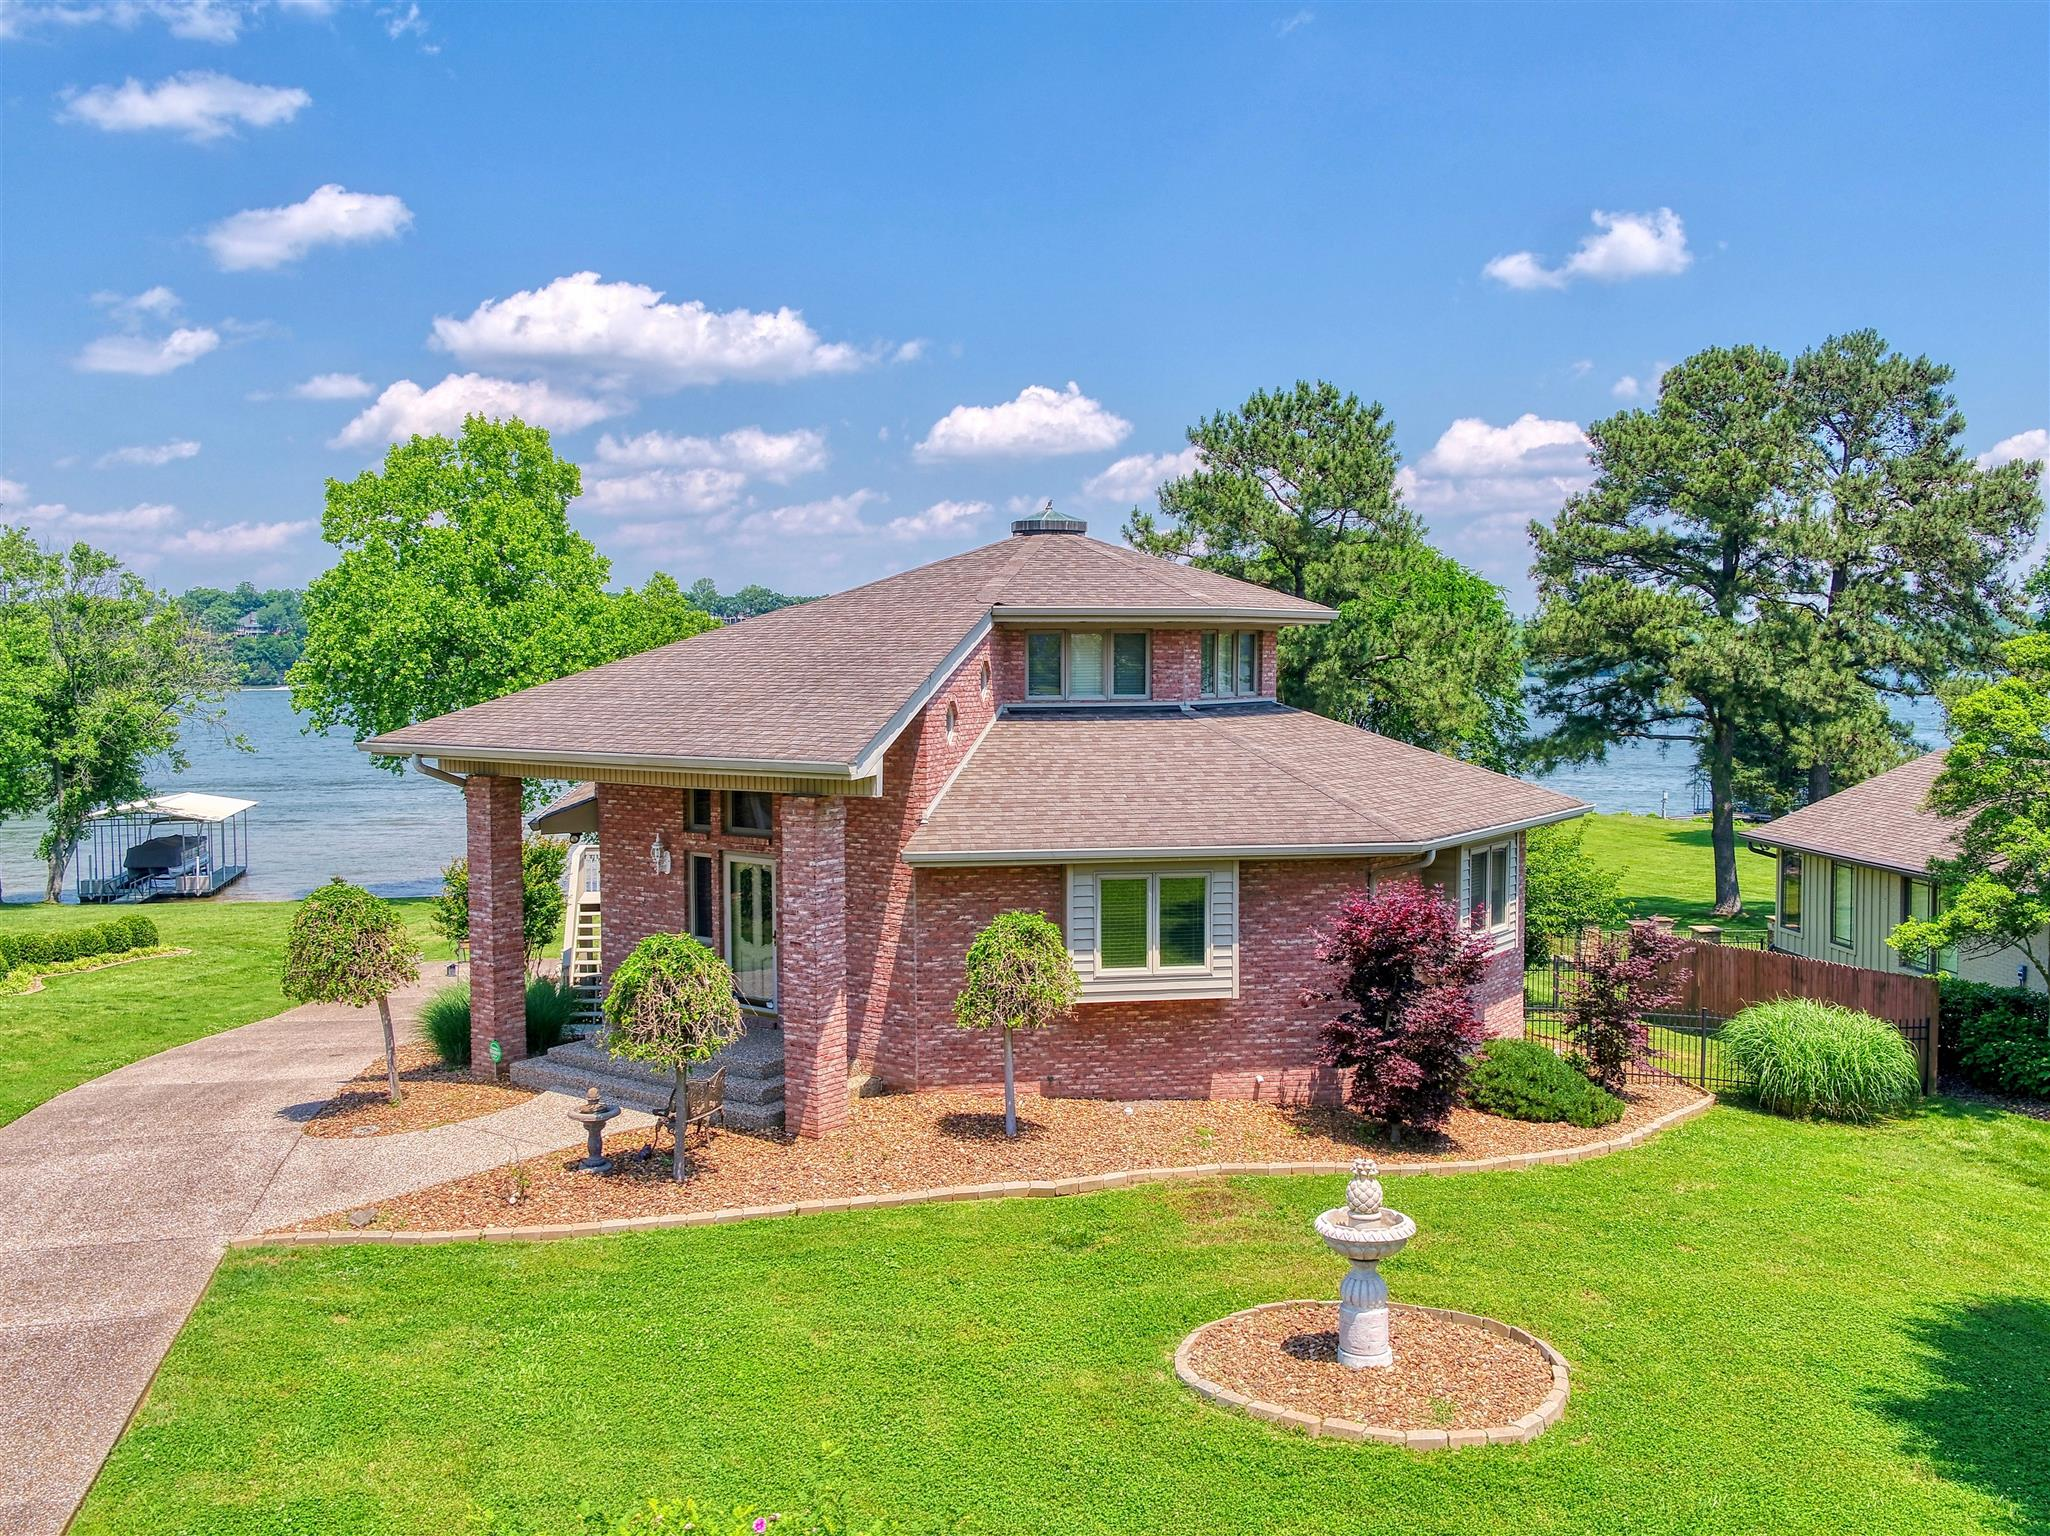 215 Lakeview Cir, Mount Juliet, Tennessee